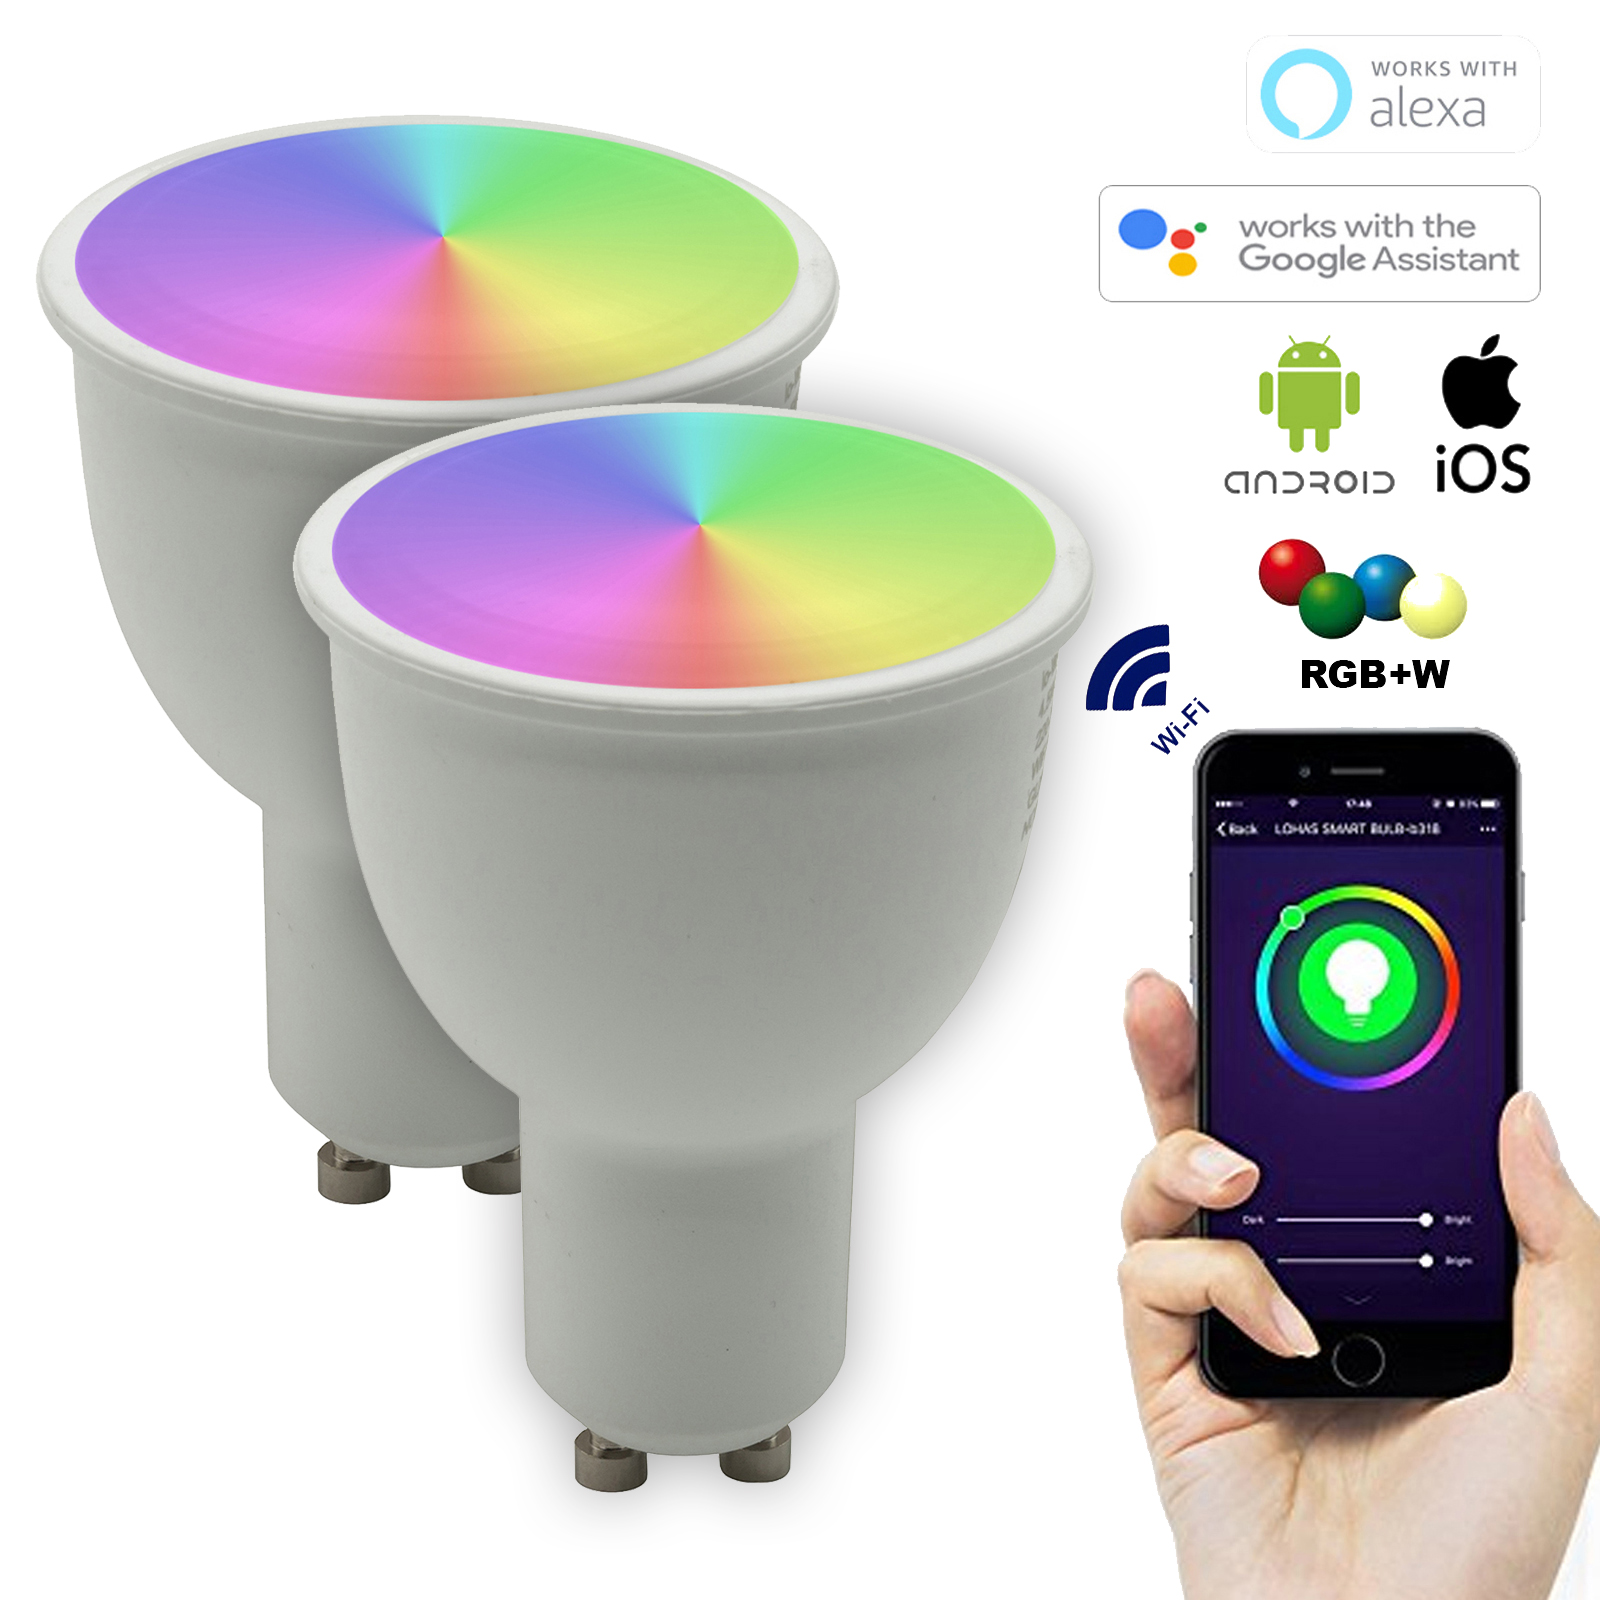 Kit de 2 focos LED SMART GU10 10W dimmable LED + luz cálida 2700K WiFi no requiere HUB compatible con Alexa IFTTT smartphone principal de Google Android iOS